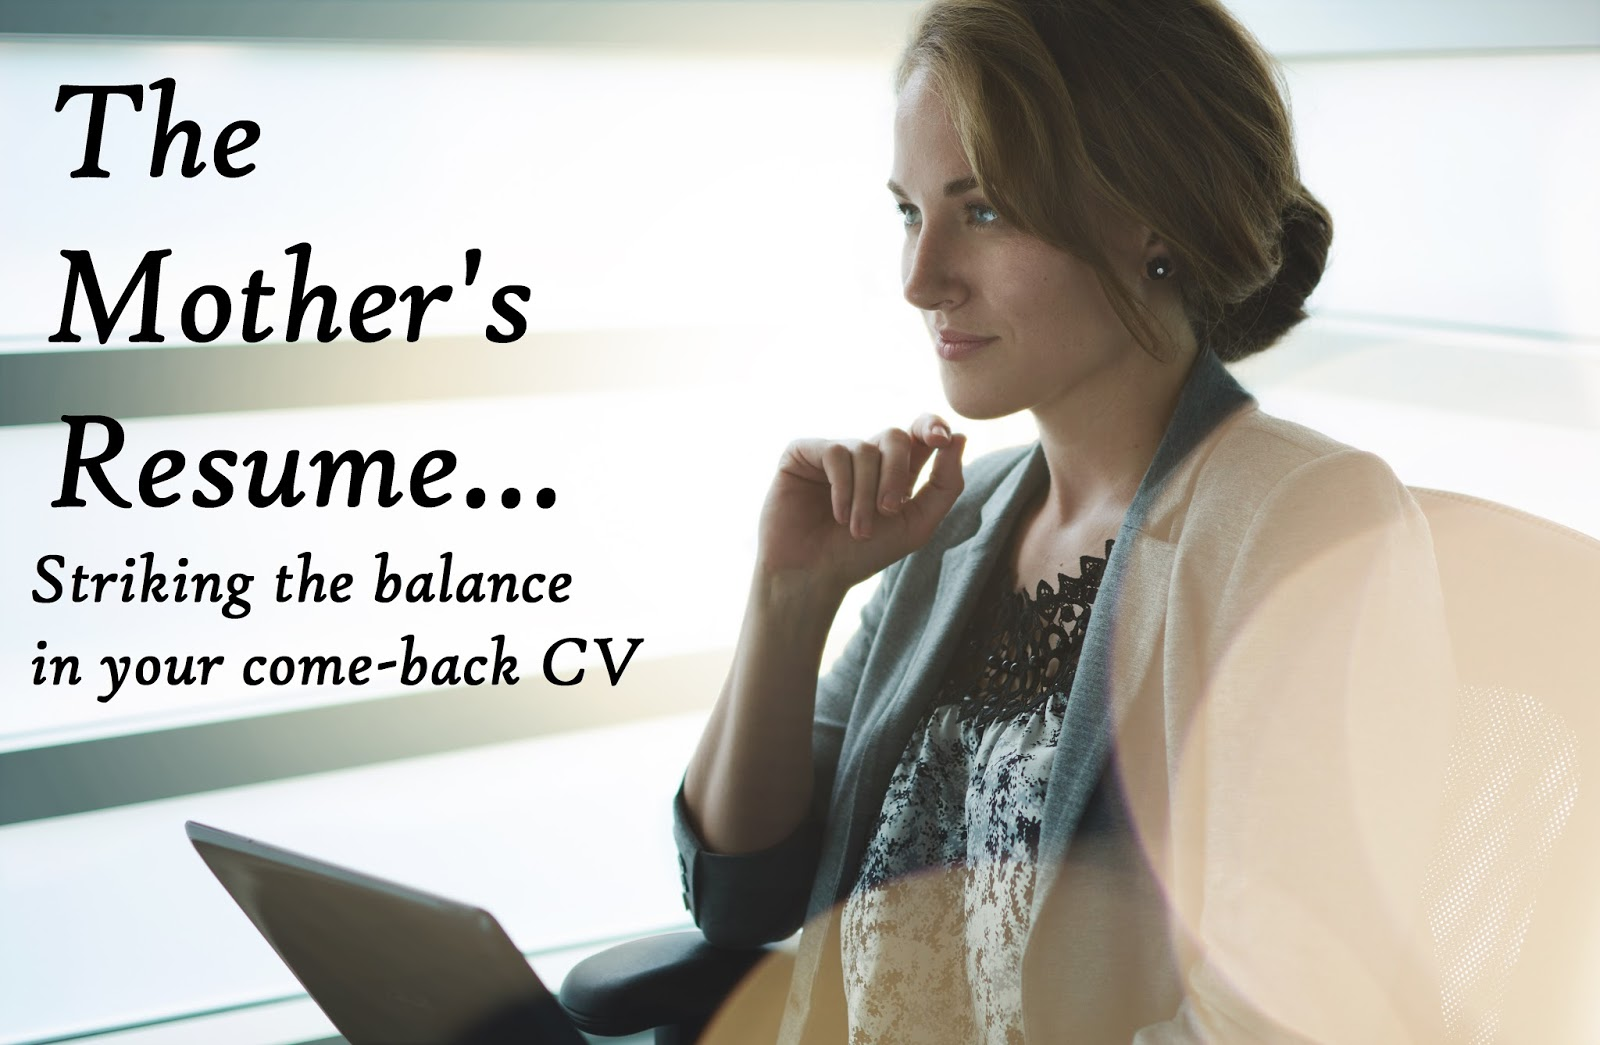 The Mother's Resume - Striking the Balance in your come-back CV